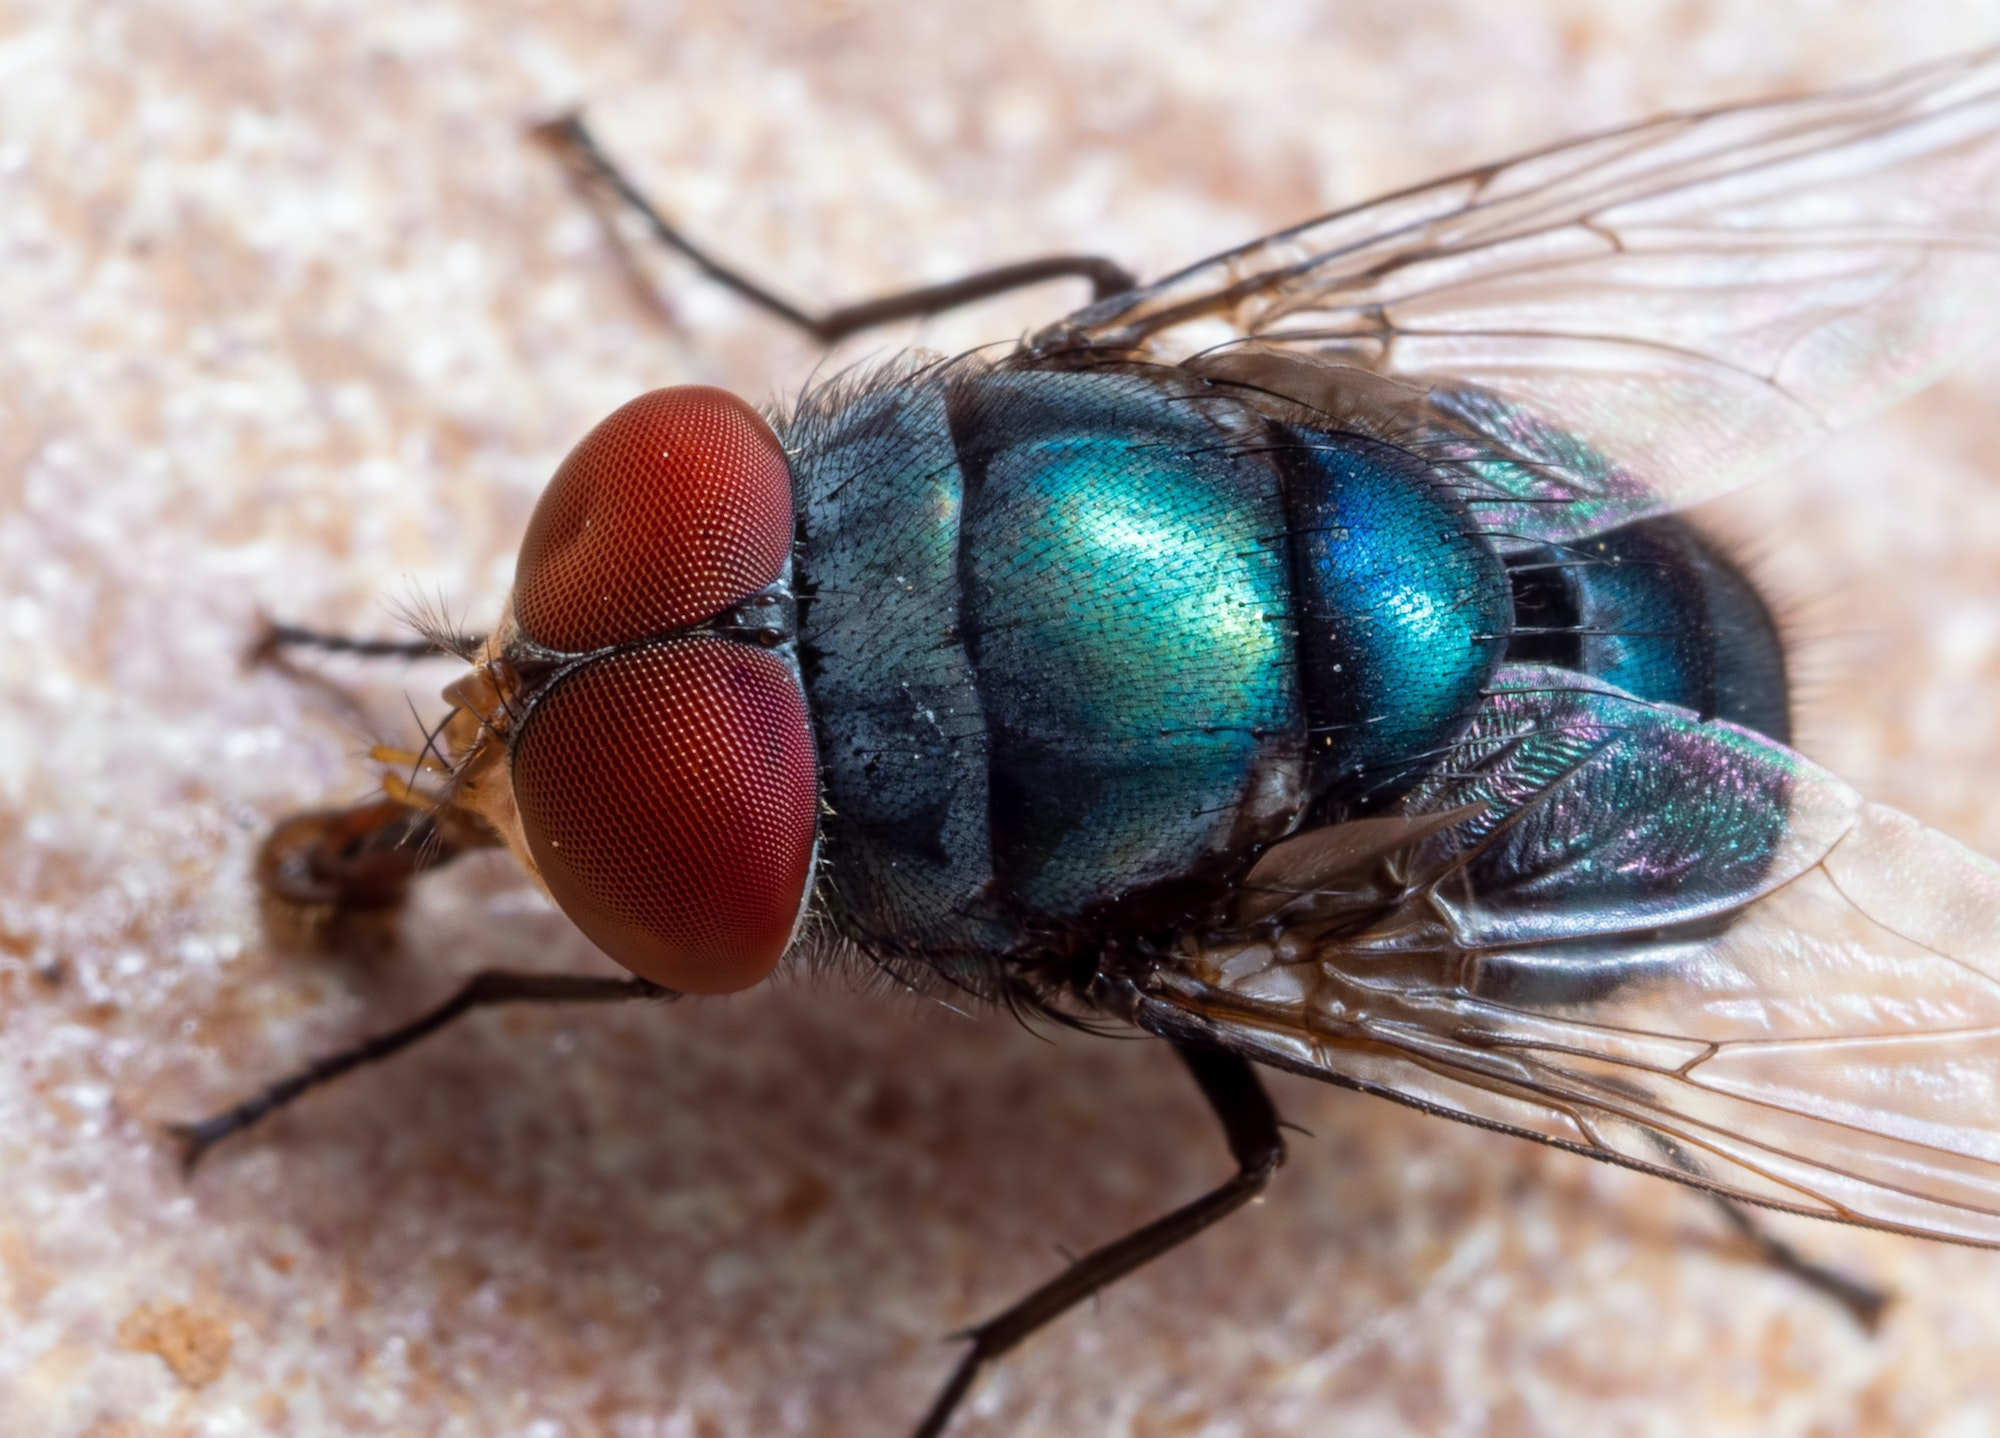 A fly viewed from the top front angle.  The fly has very large red eyes and a shiny green and blue body.